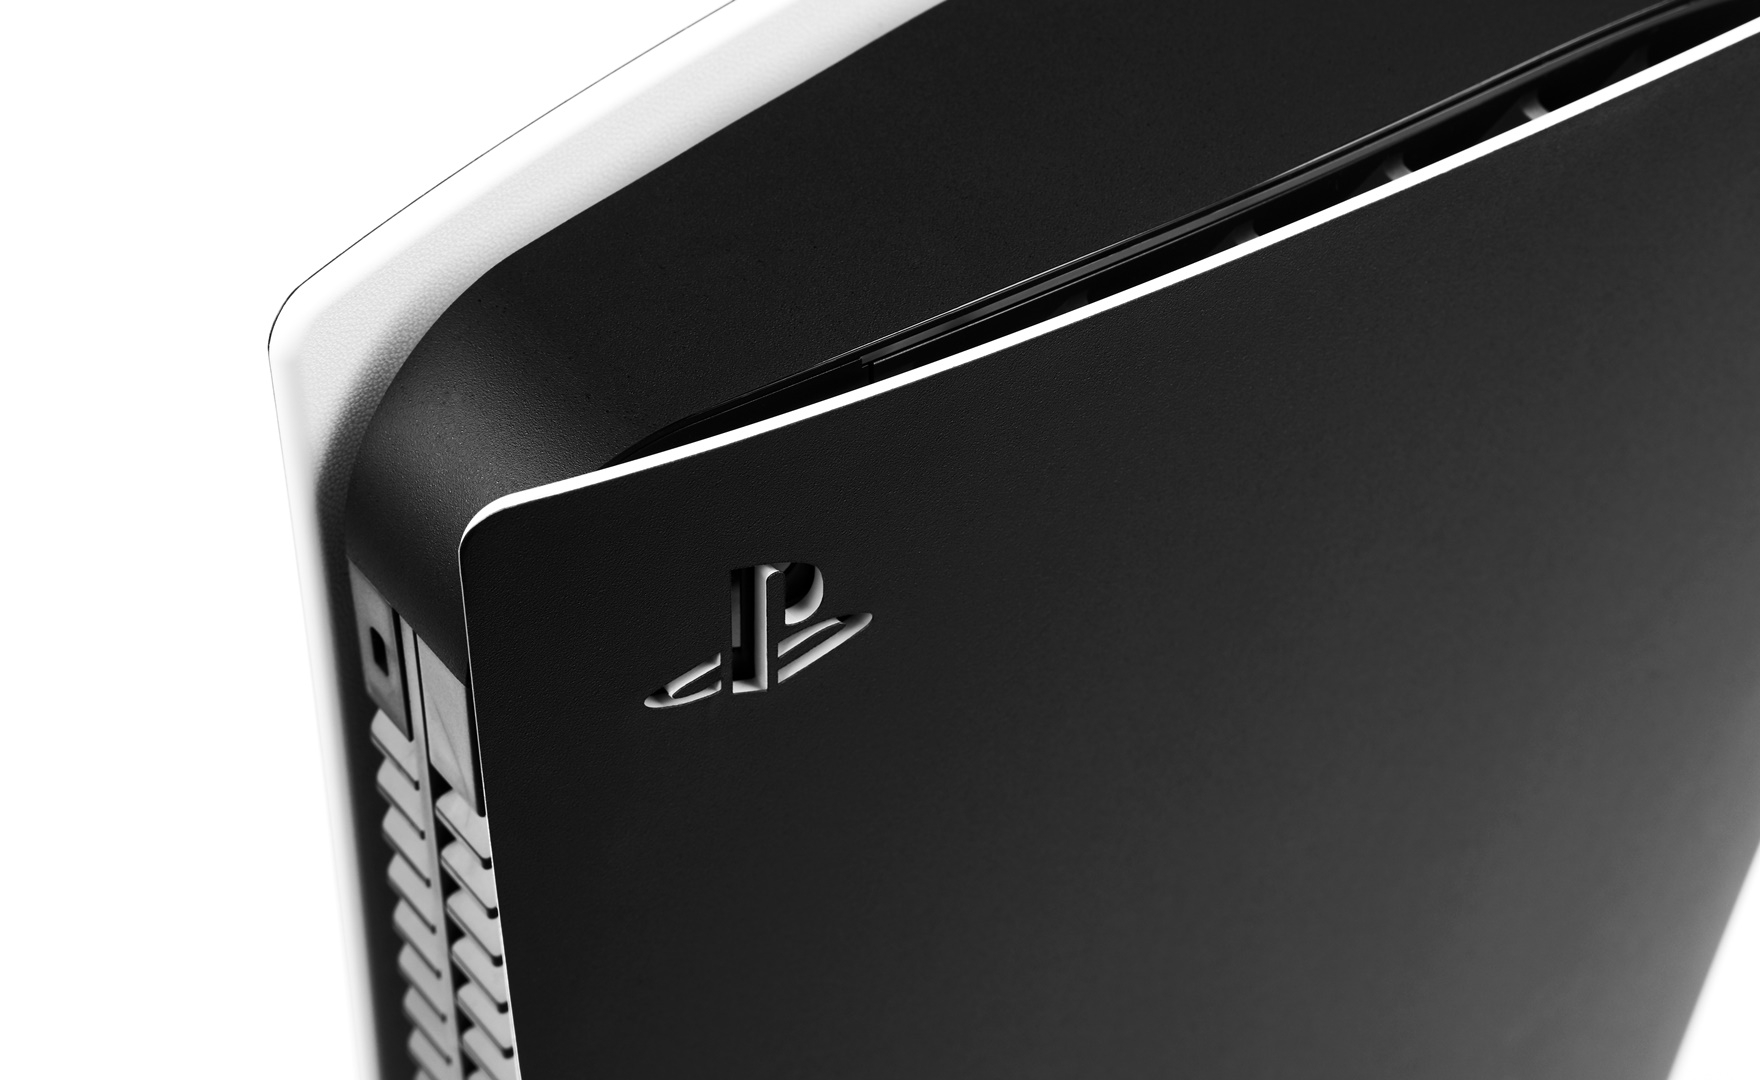 Dbrand sfida Sony e mette in vendita cover nere per PlayStation 5